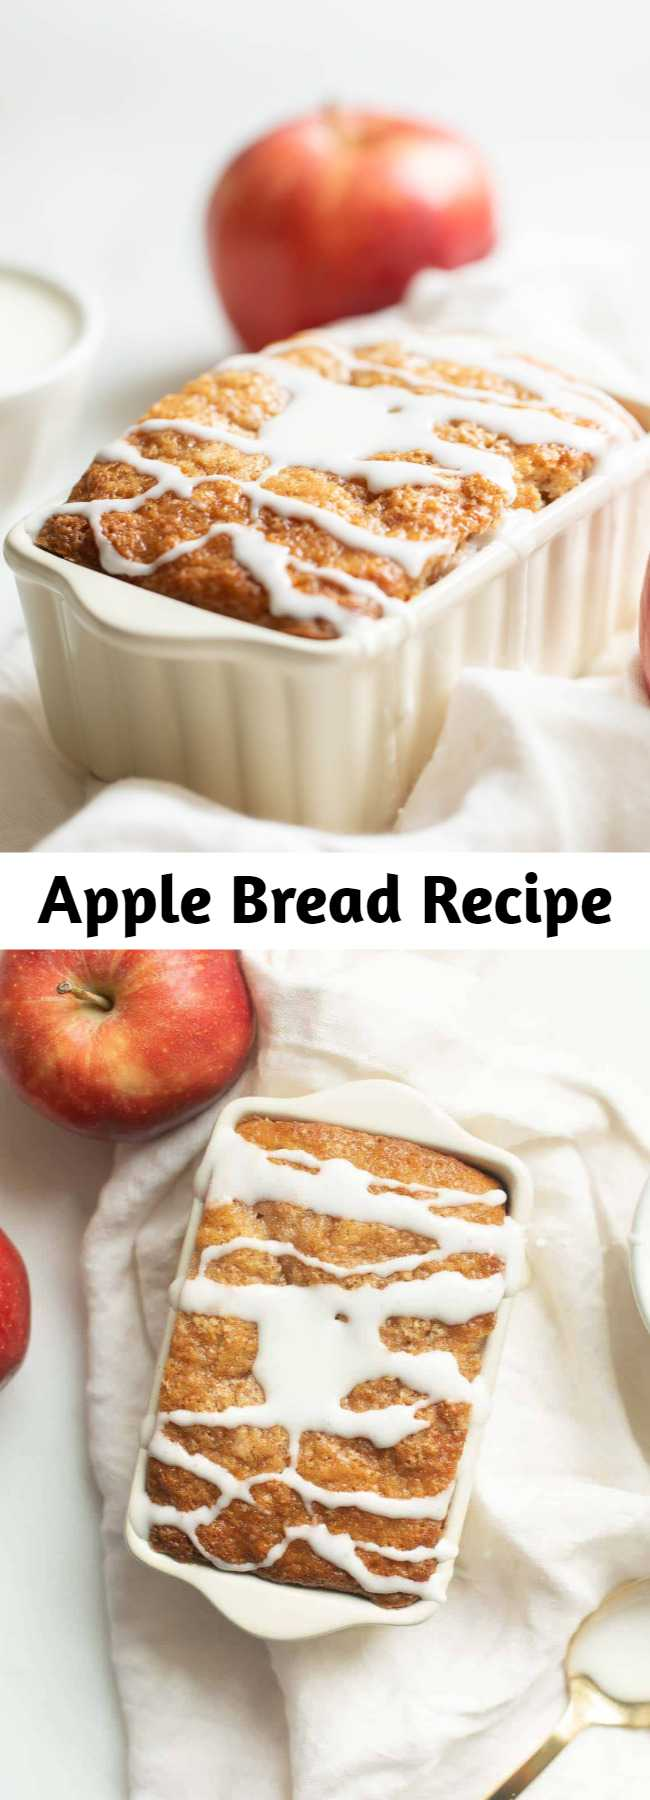 Apple Bread Recipe - This apple cinnamon bread recipe yields 6 mini loaves, making it great for both indulging and gifting! It's a foolproof no yeast quickbread that takes just 10 minutes from mixer to oven requires only staple ingredients. How is that for easy fall flavor? #applebread #sweetbread #apple #bread #applecinnamonbread #cinnamon #fall #fallrecipe